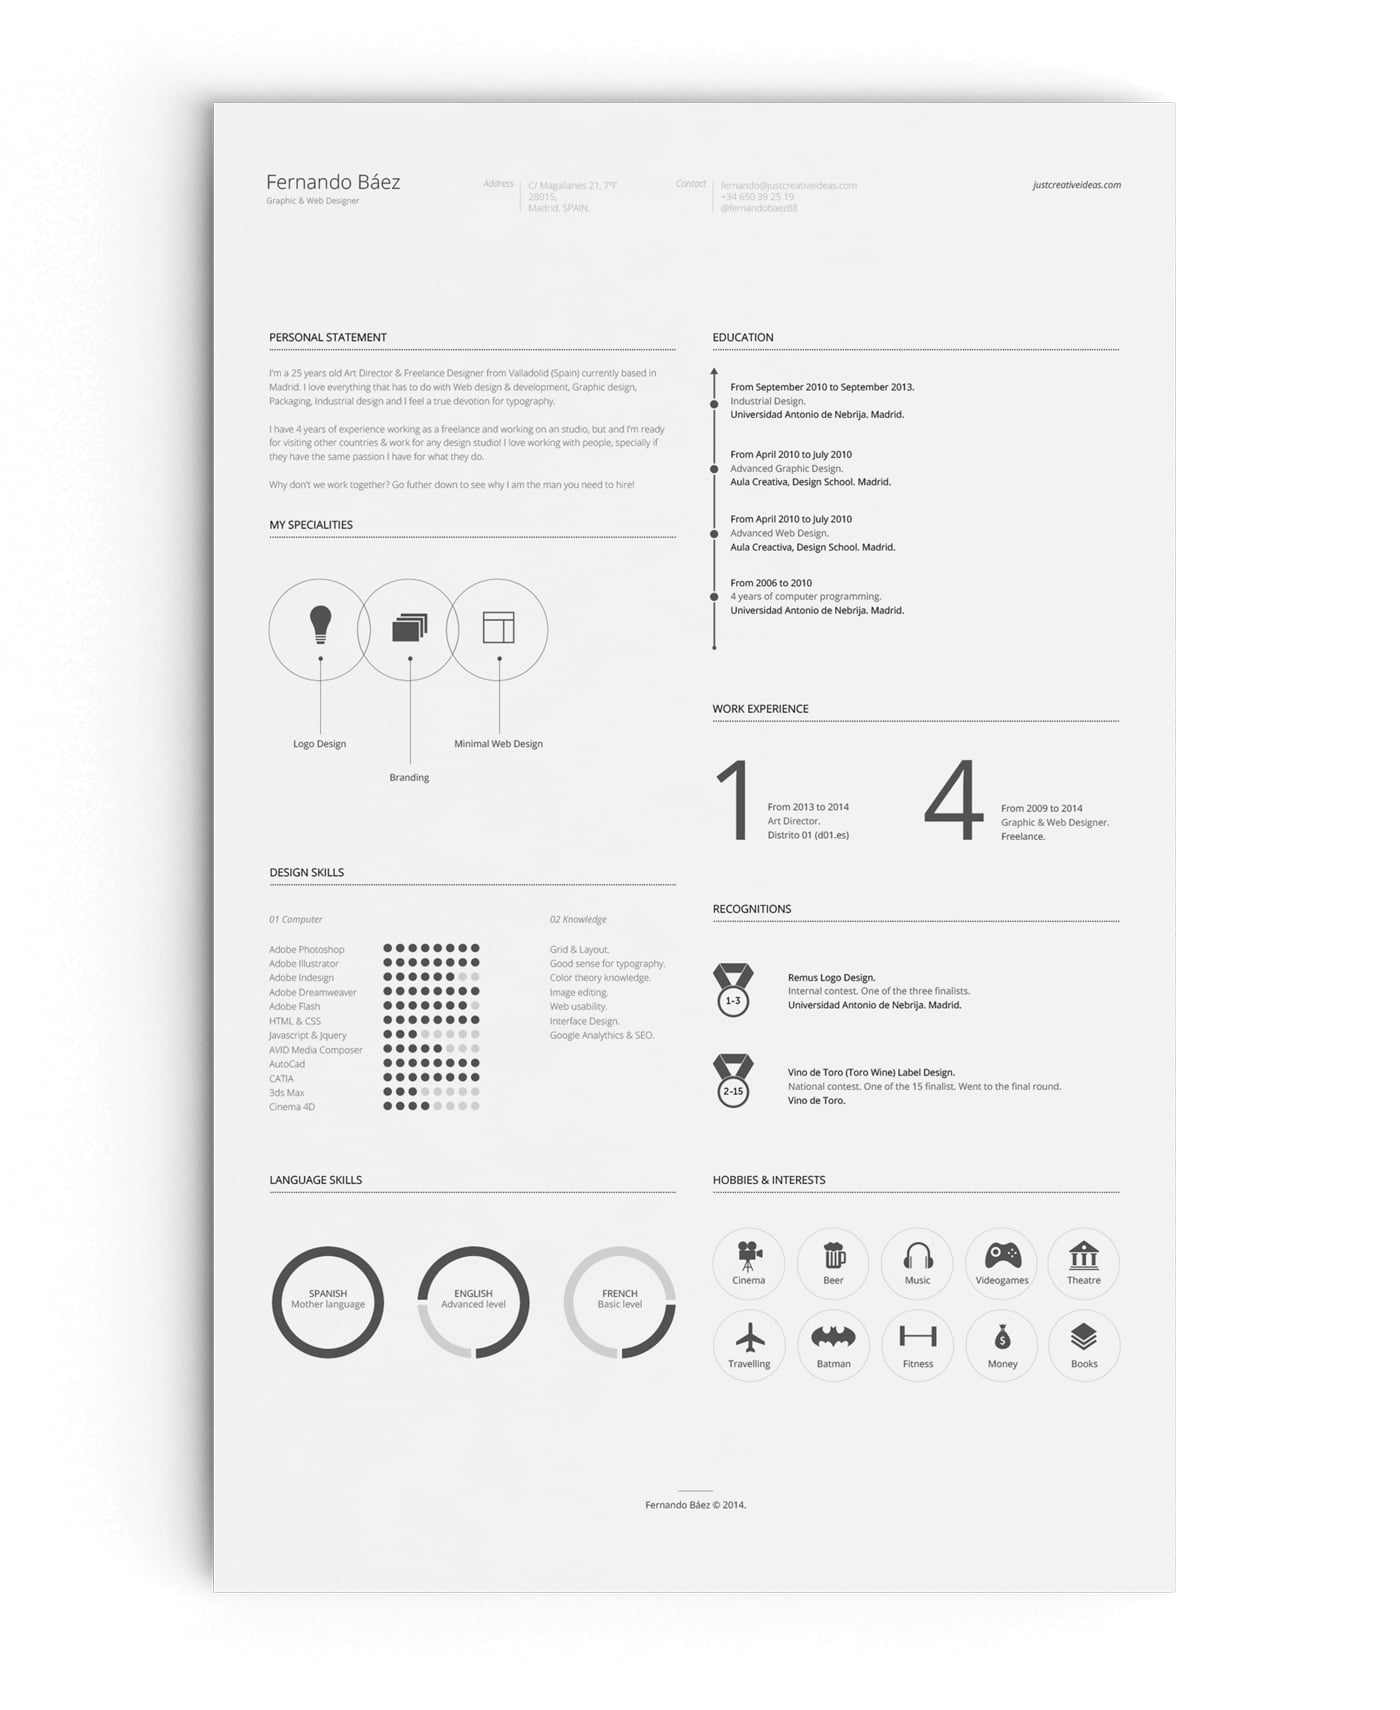 Minimalism with infographic